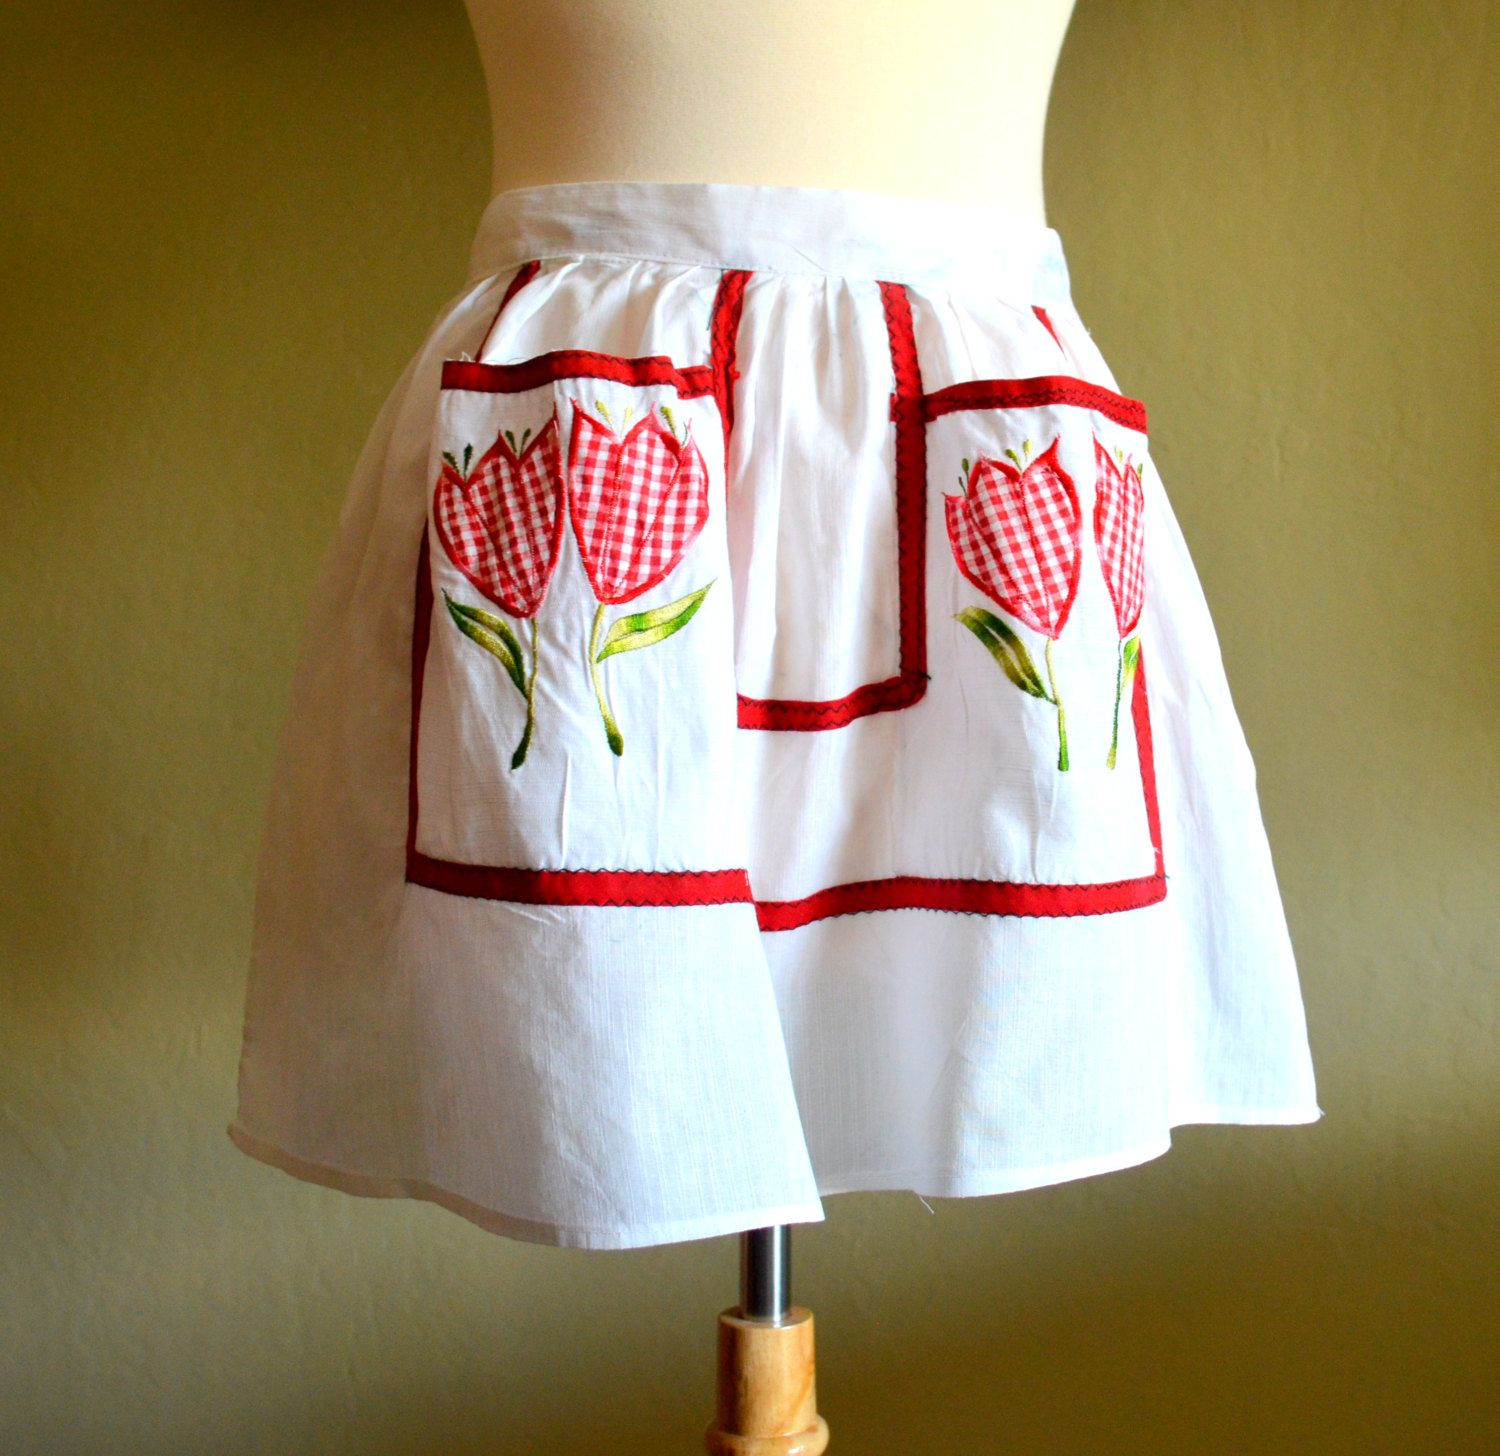 White half apron with pockets - Vintage Half Apron With Red Gingham Tulip Applique And Pockets Retro Kitchen White And Red